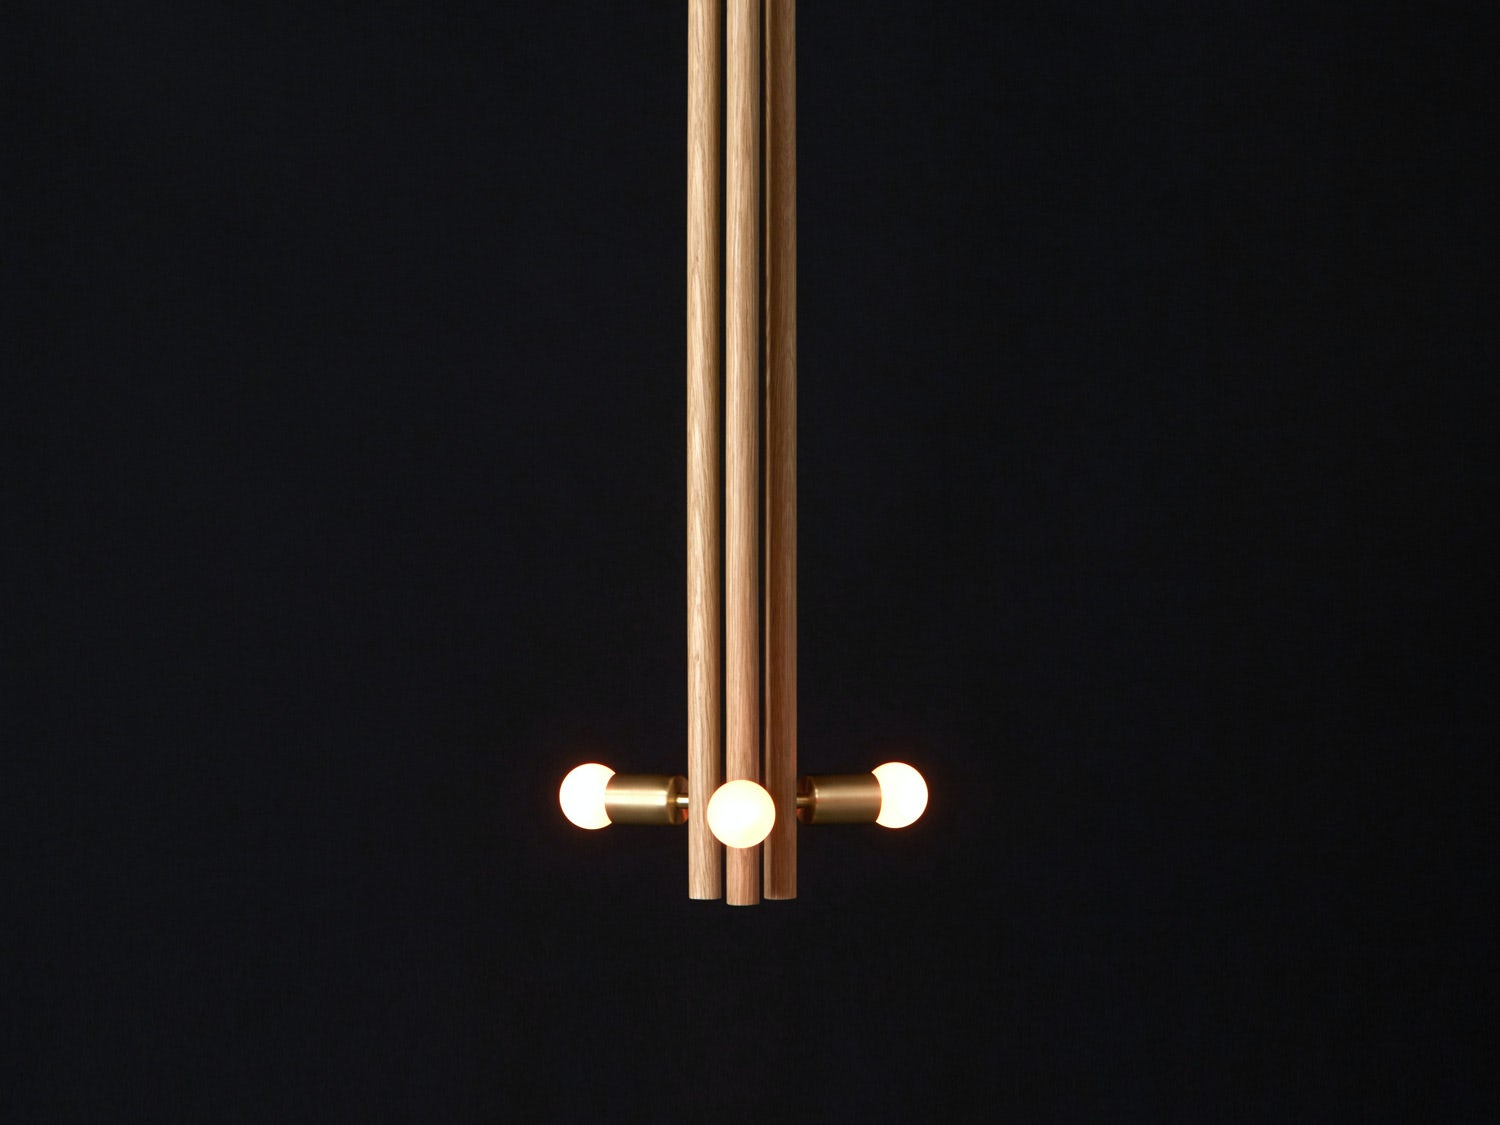 gallery image for Lodge Pendant